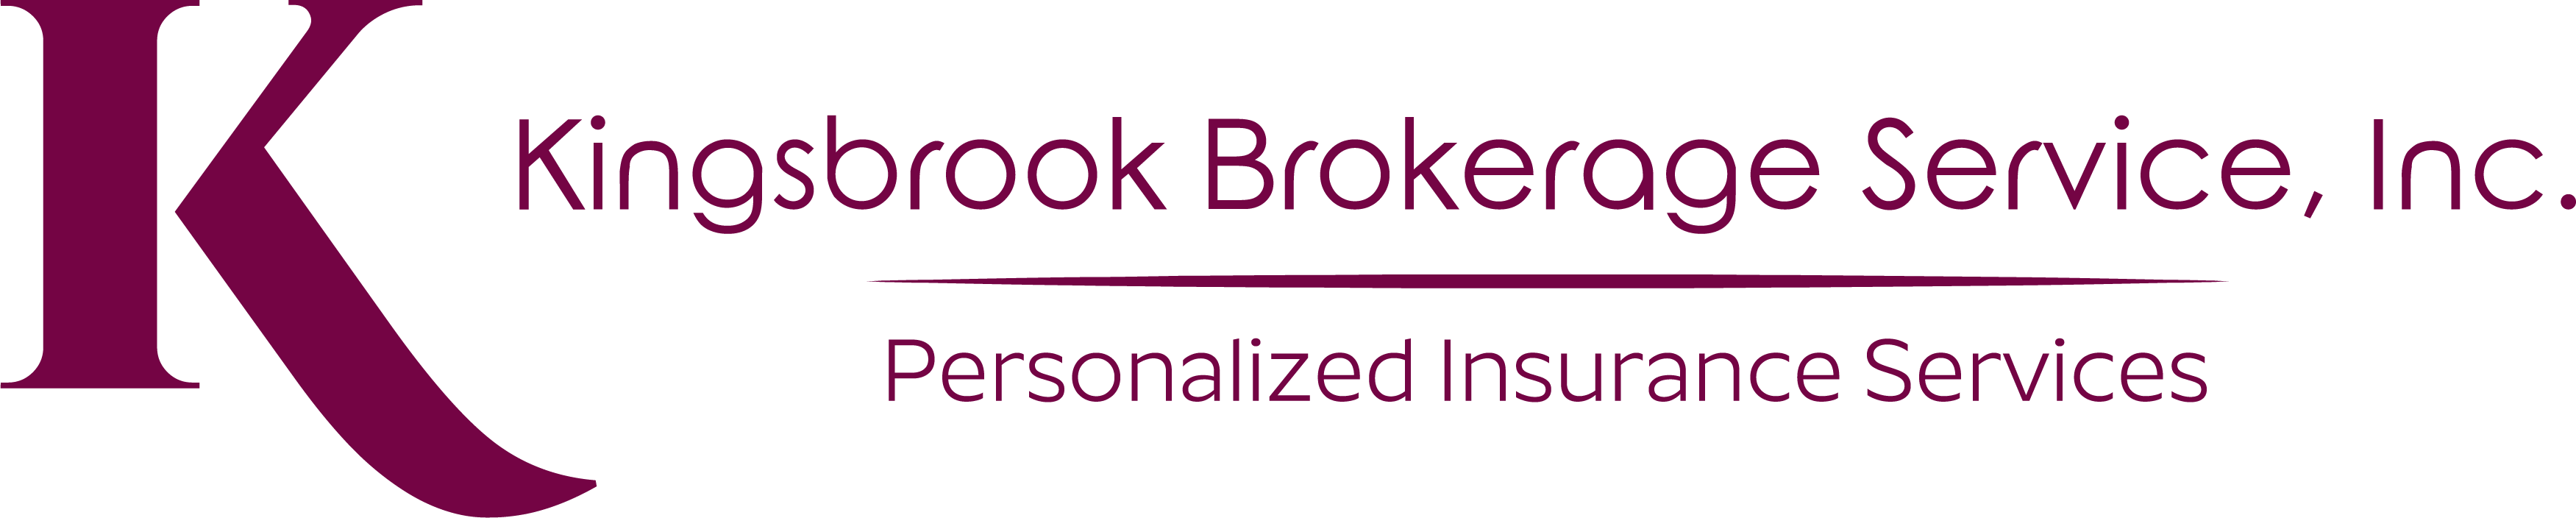 Kingsbrook Brokerage Services - insurance agency in new york city